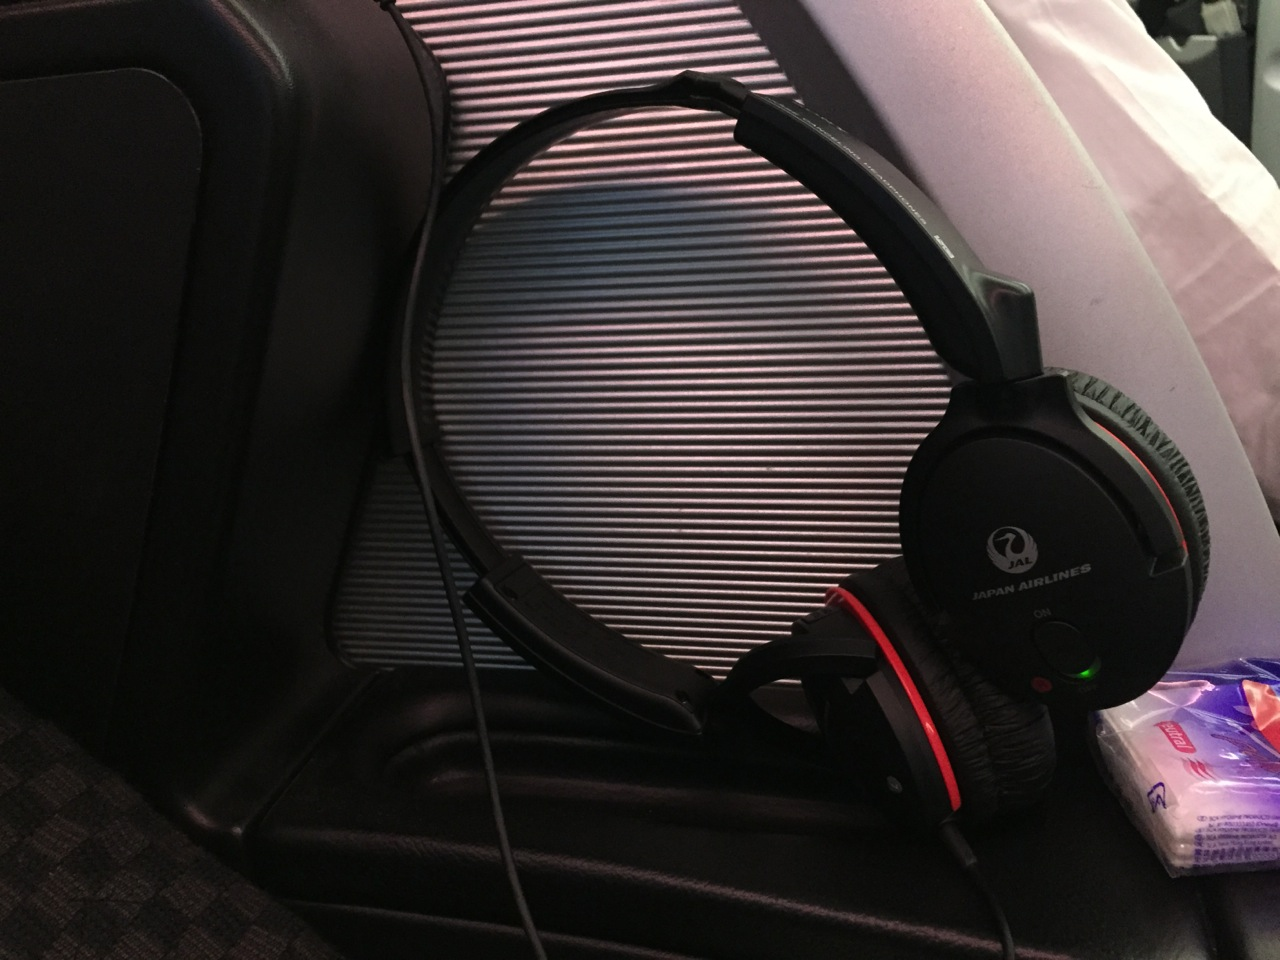 noise-cancellation headset